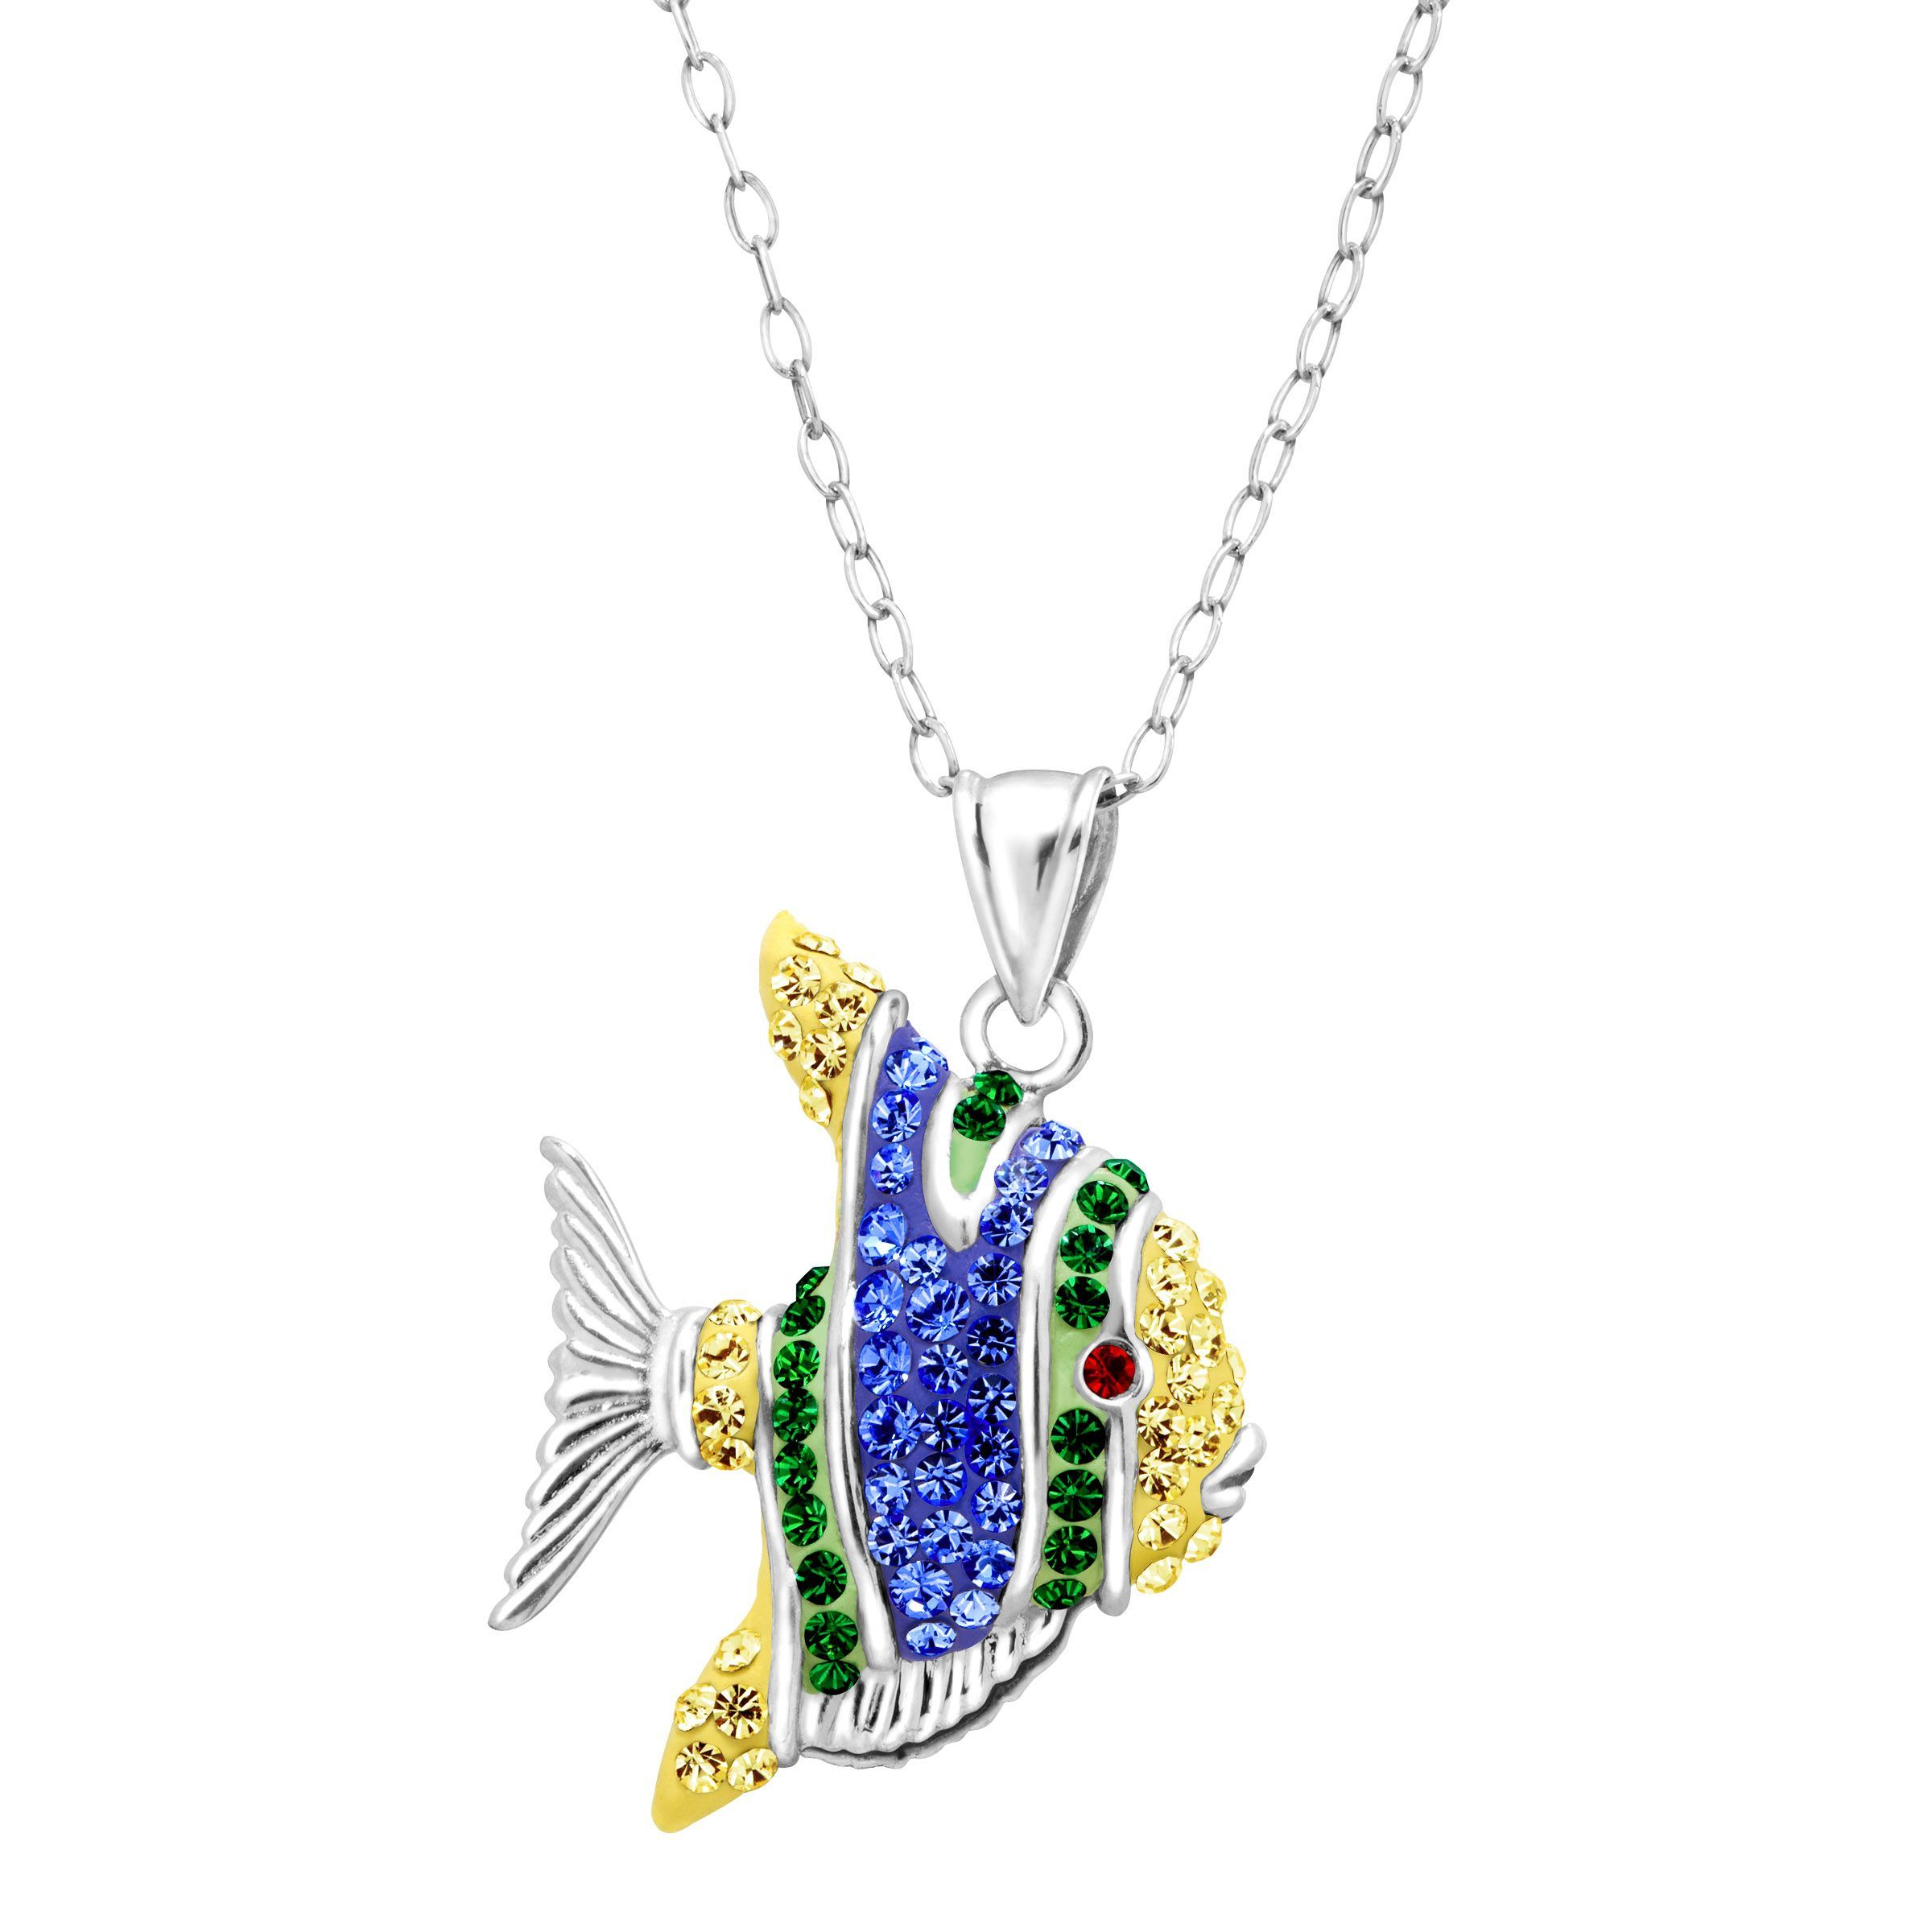 happy pendant necklace chopard jewels a s fish diamond and sapphire hgk by statement